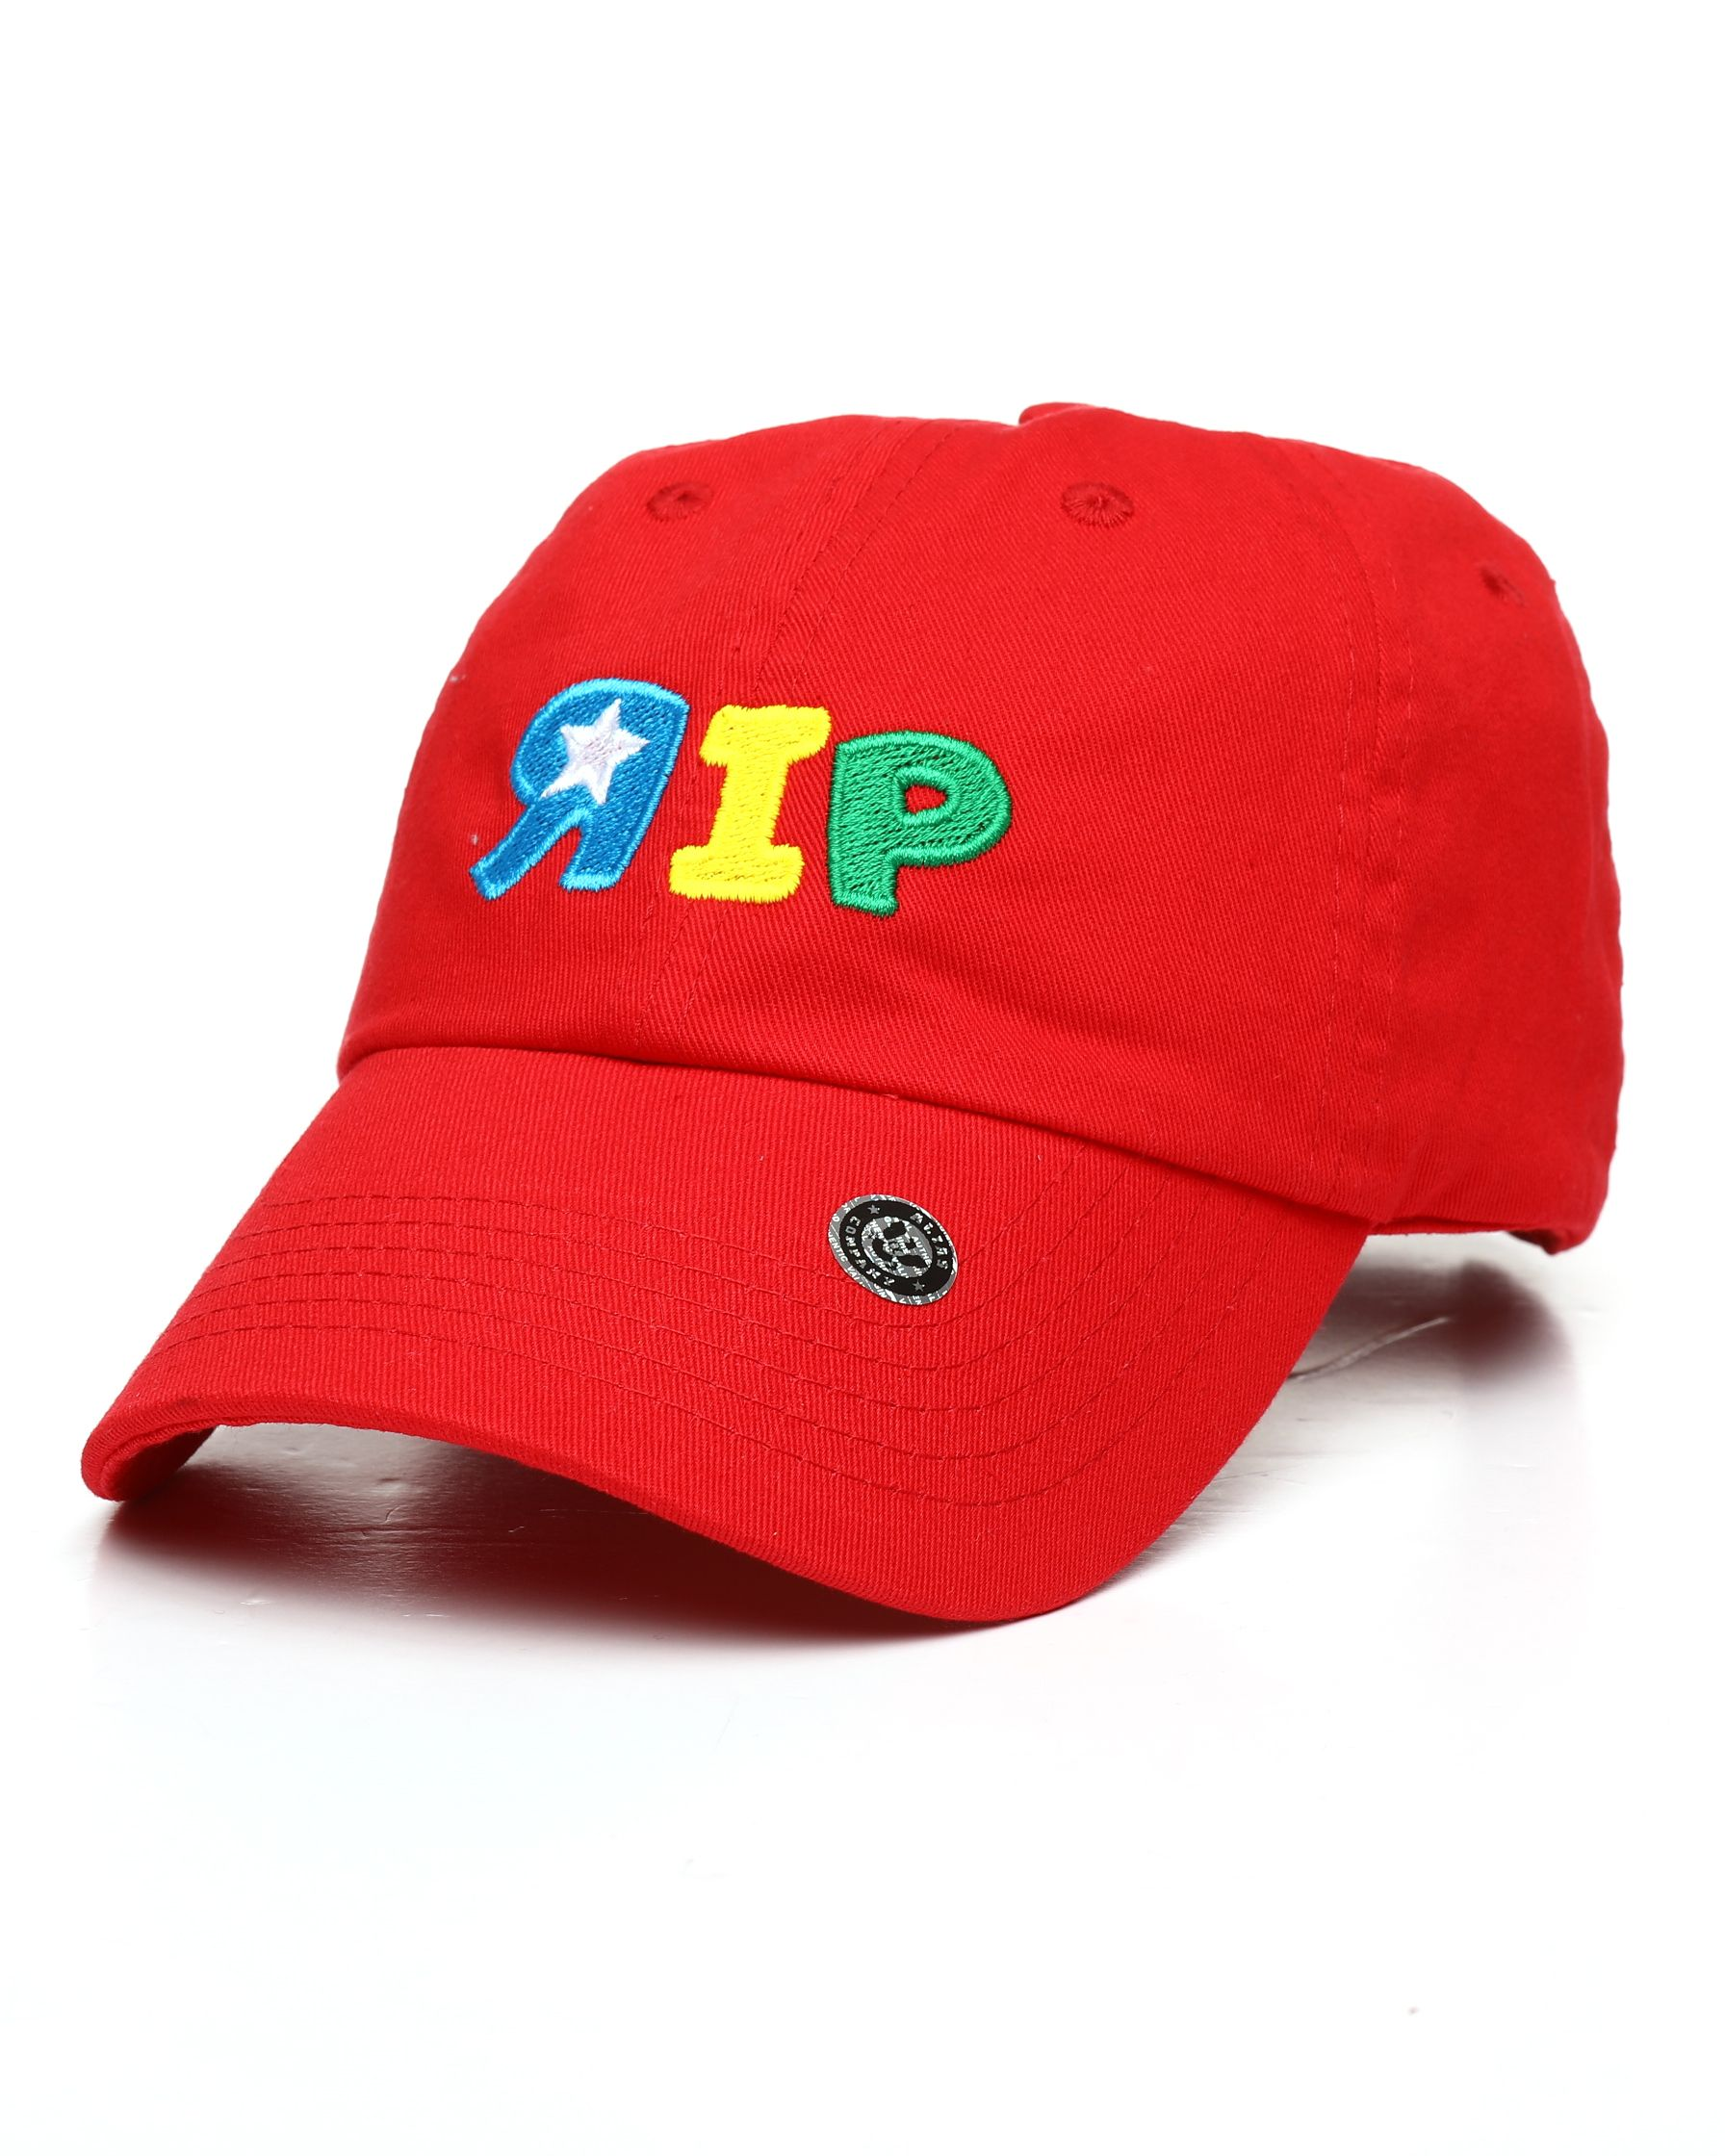 8fe368f6 Find RIP Toys Dad Hat Men's Hats from Buyers Picks & more at DrJays.